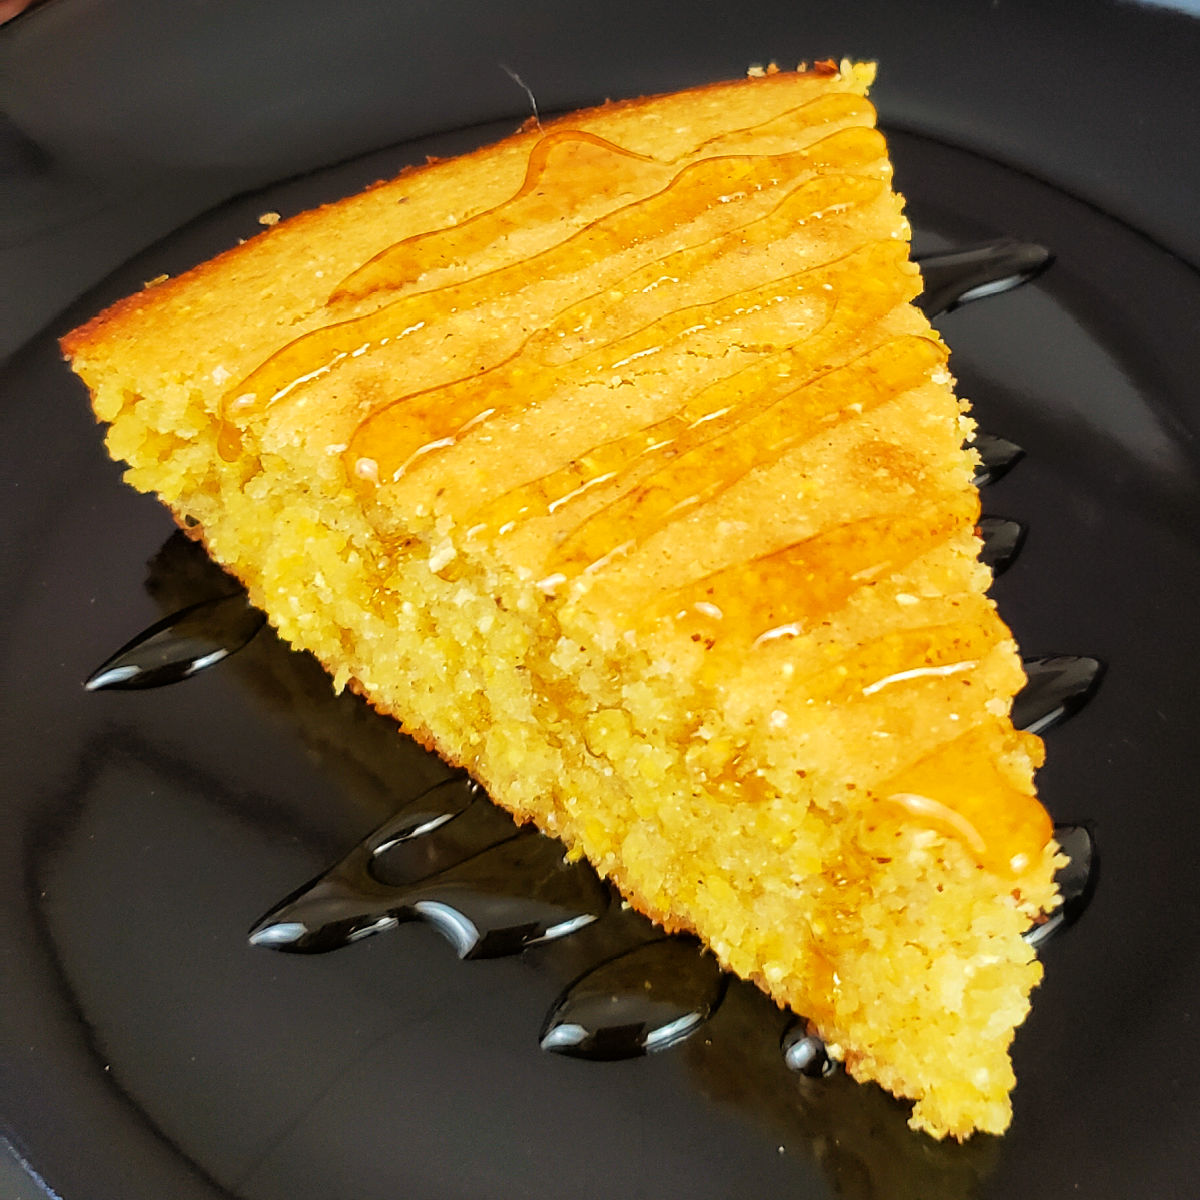 Slice of gluten free cornbread drizzled with honey on a black dessert plate.